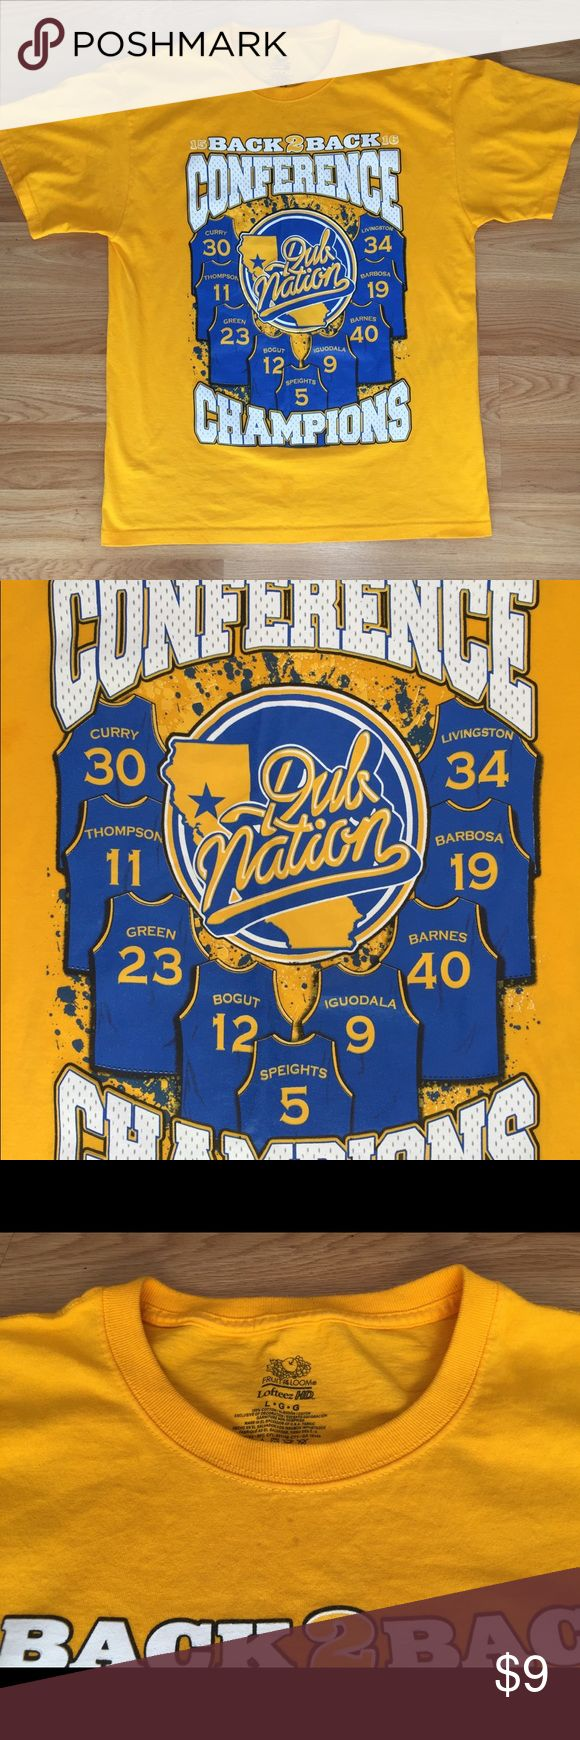 Golden State Warriors Conference Finals shirt NBA Golden State Warriors 2015-2016 conference finals champions shirt. New w/o tags. Shirts Tees - Short Sleeve